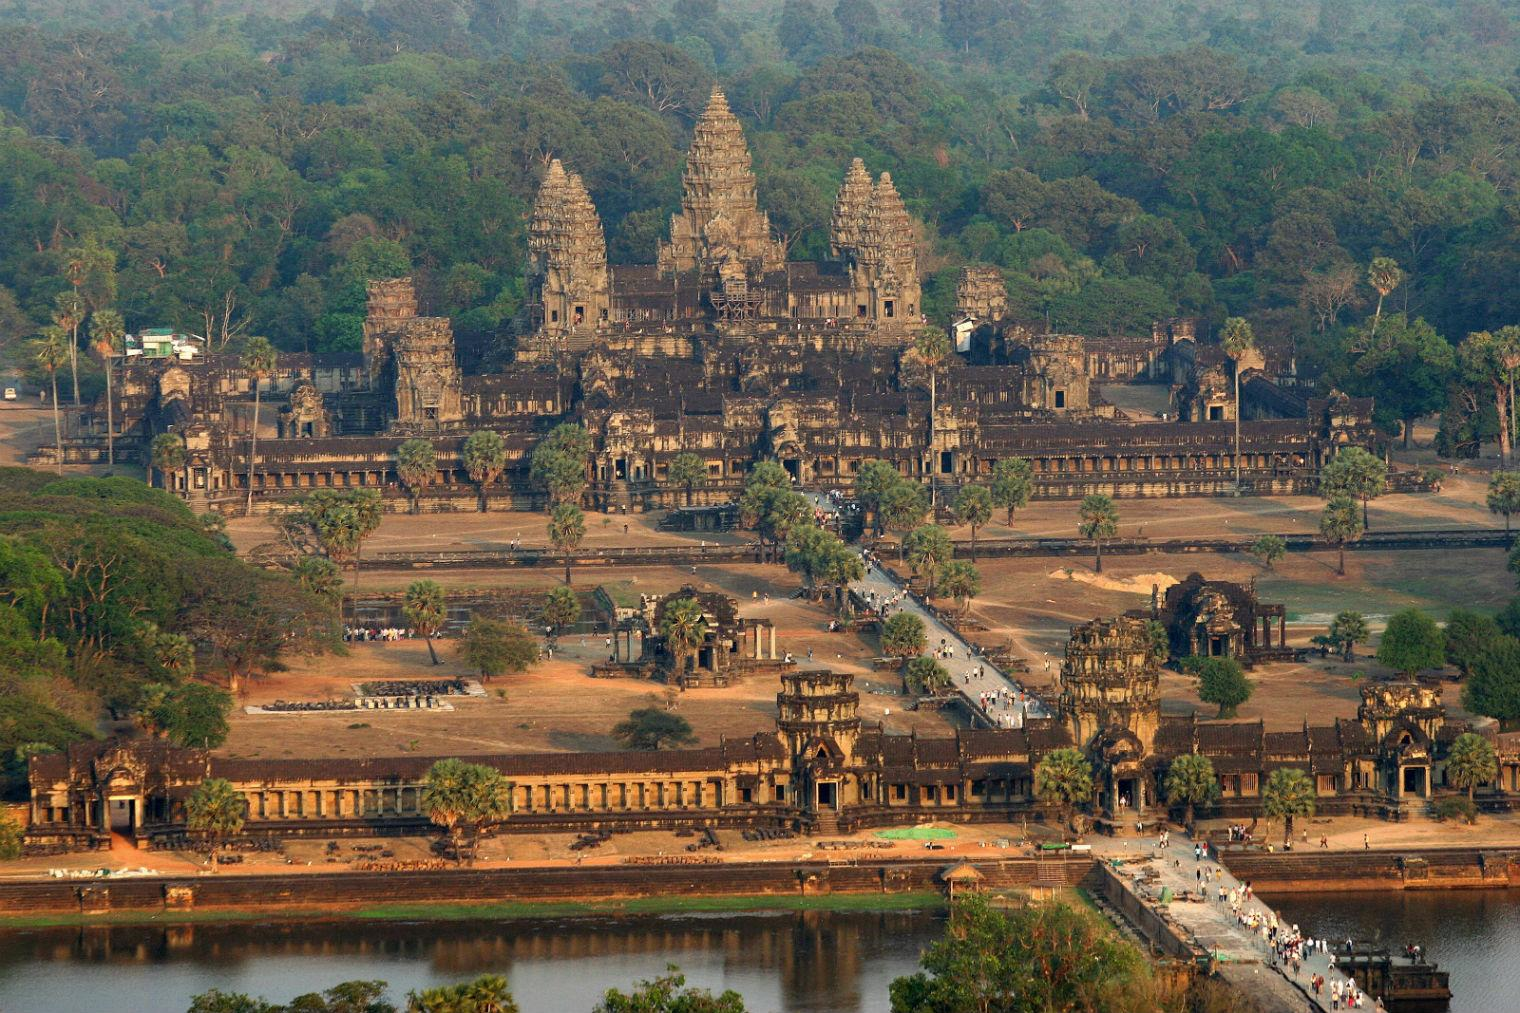 The 10 tourist destinations you absolutely must visit, according to Lonely Planet